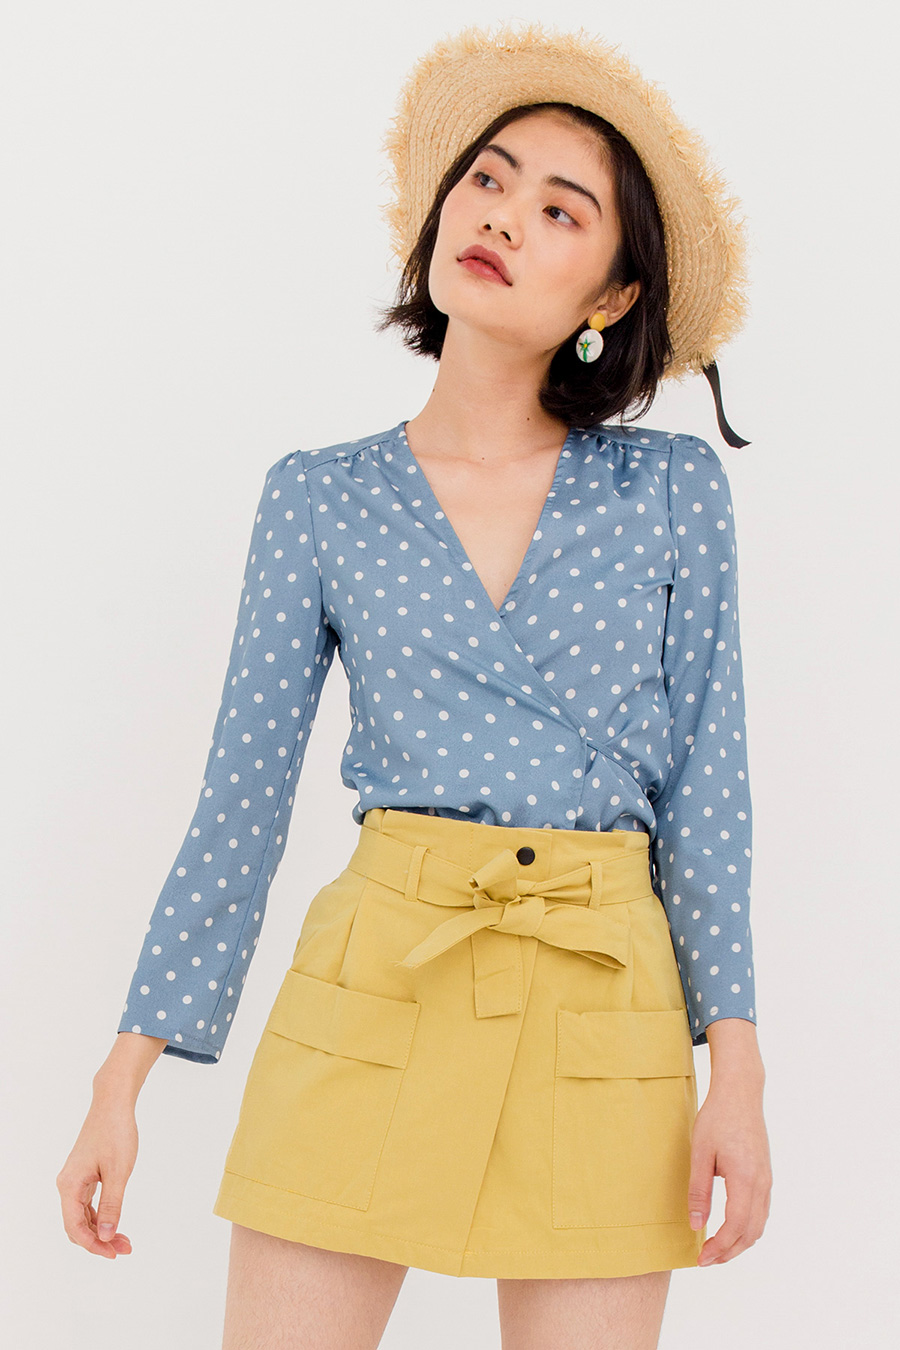 *BO* DOREMI DOTTED BLOUSE - BLUE